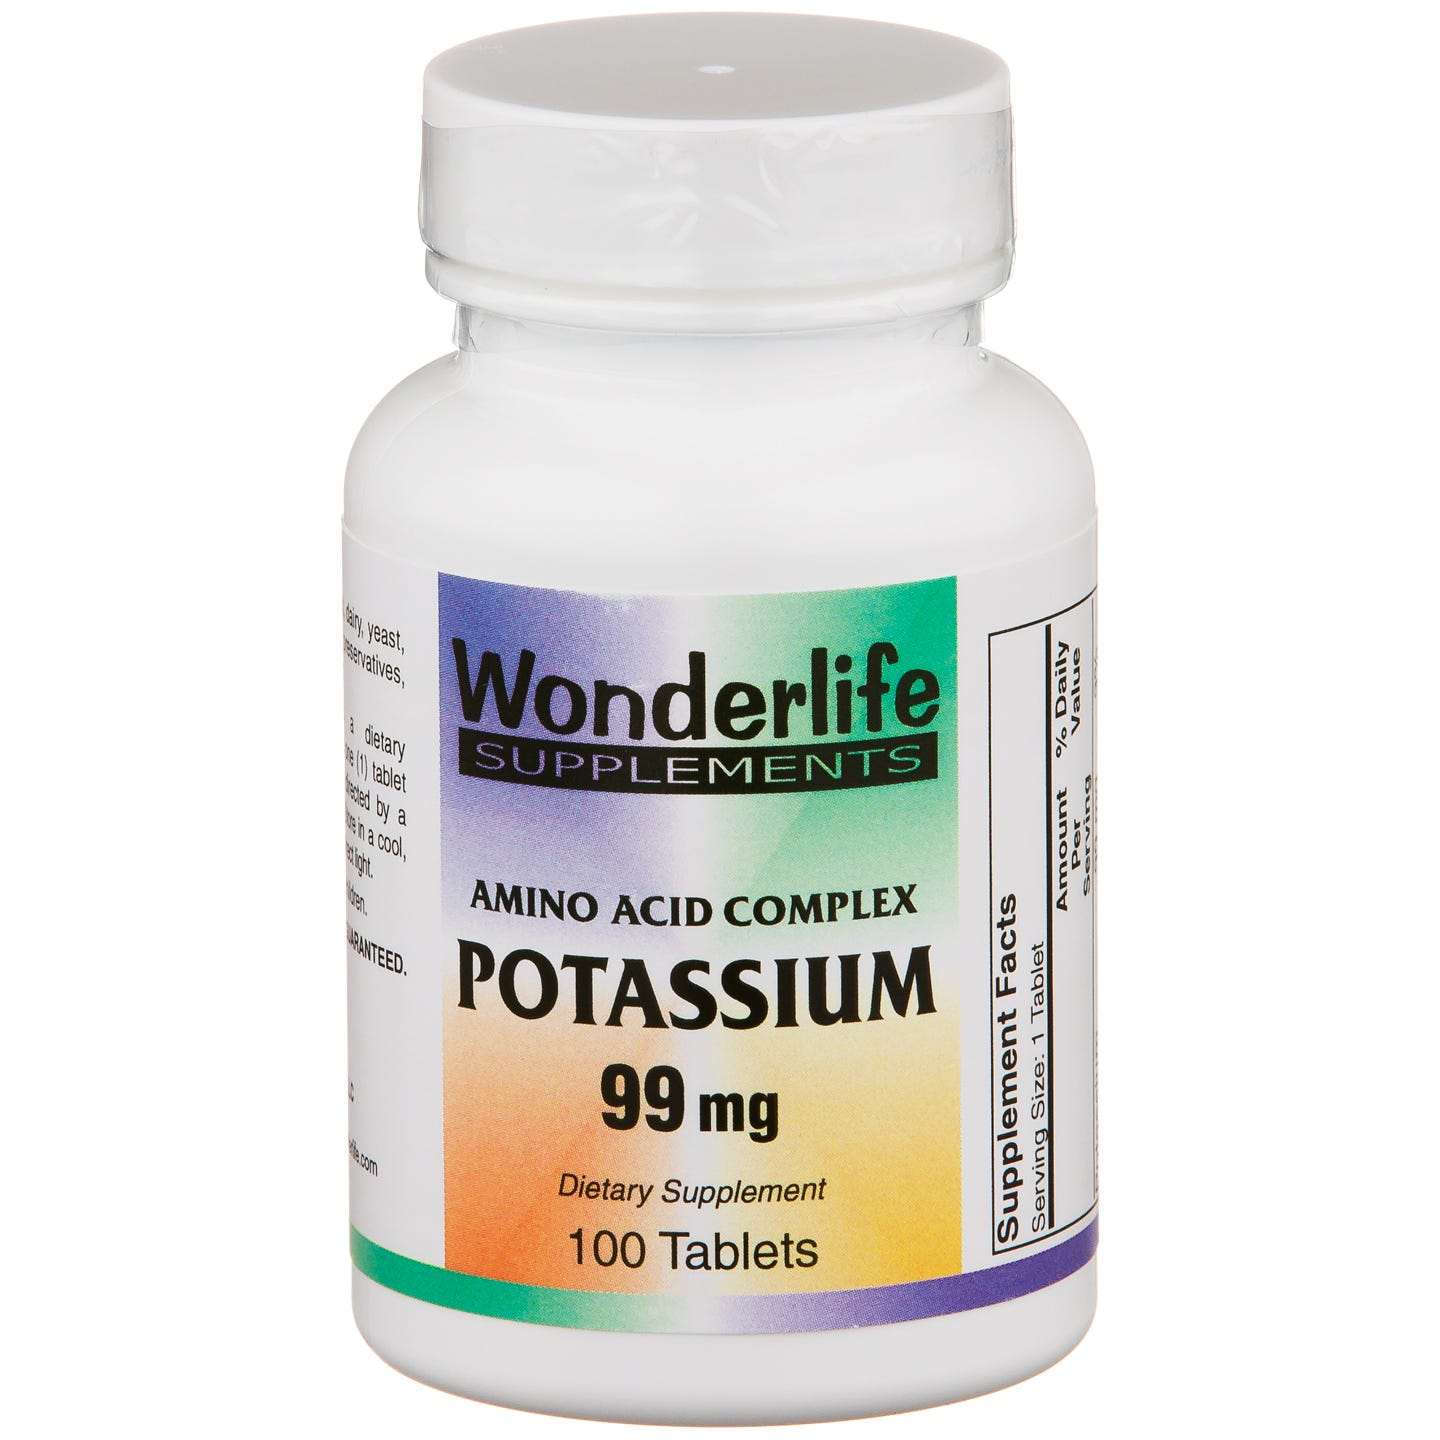 Amino Acid Complex Potassium 99mg (100 ct) - Wonderlife - Rapid Diet Weight Loss Products Shop